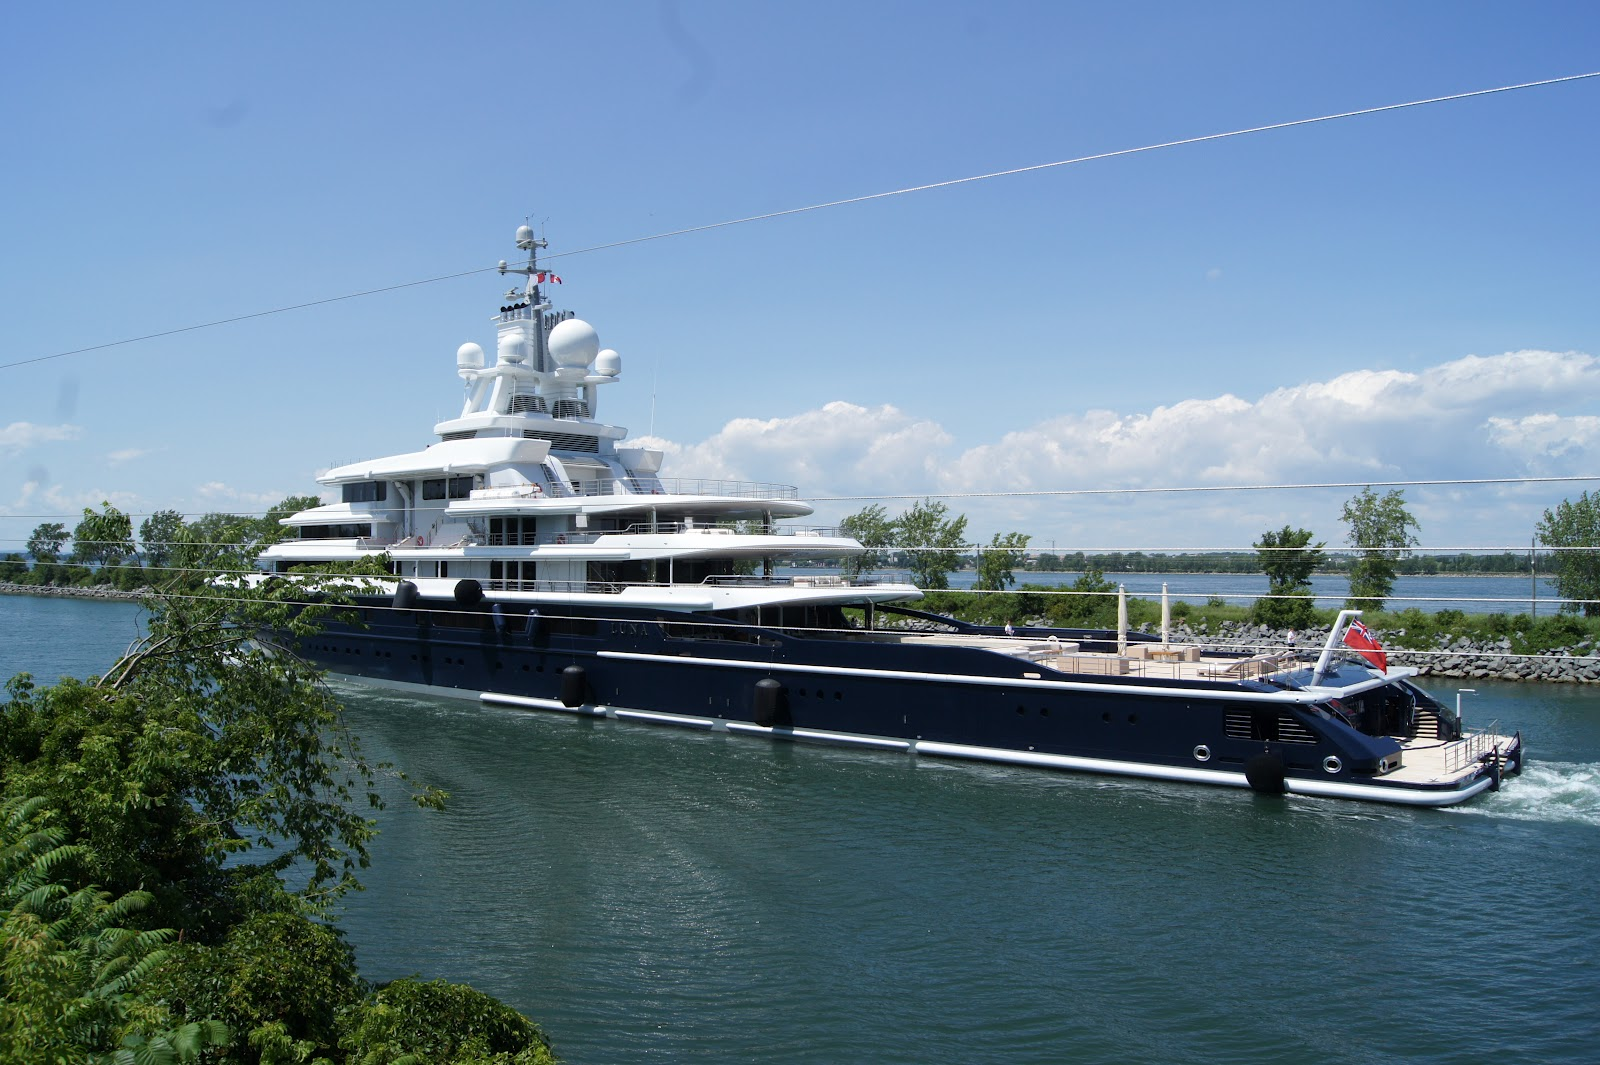 Mega yacht luna one of the world s largest yachts coming to the